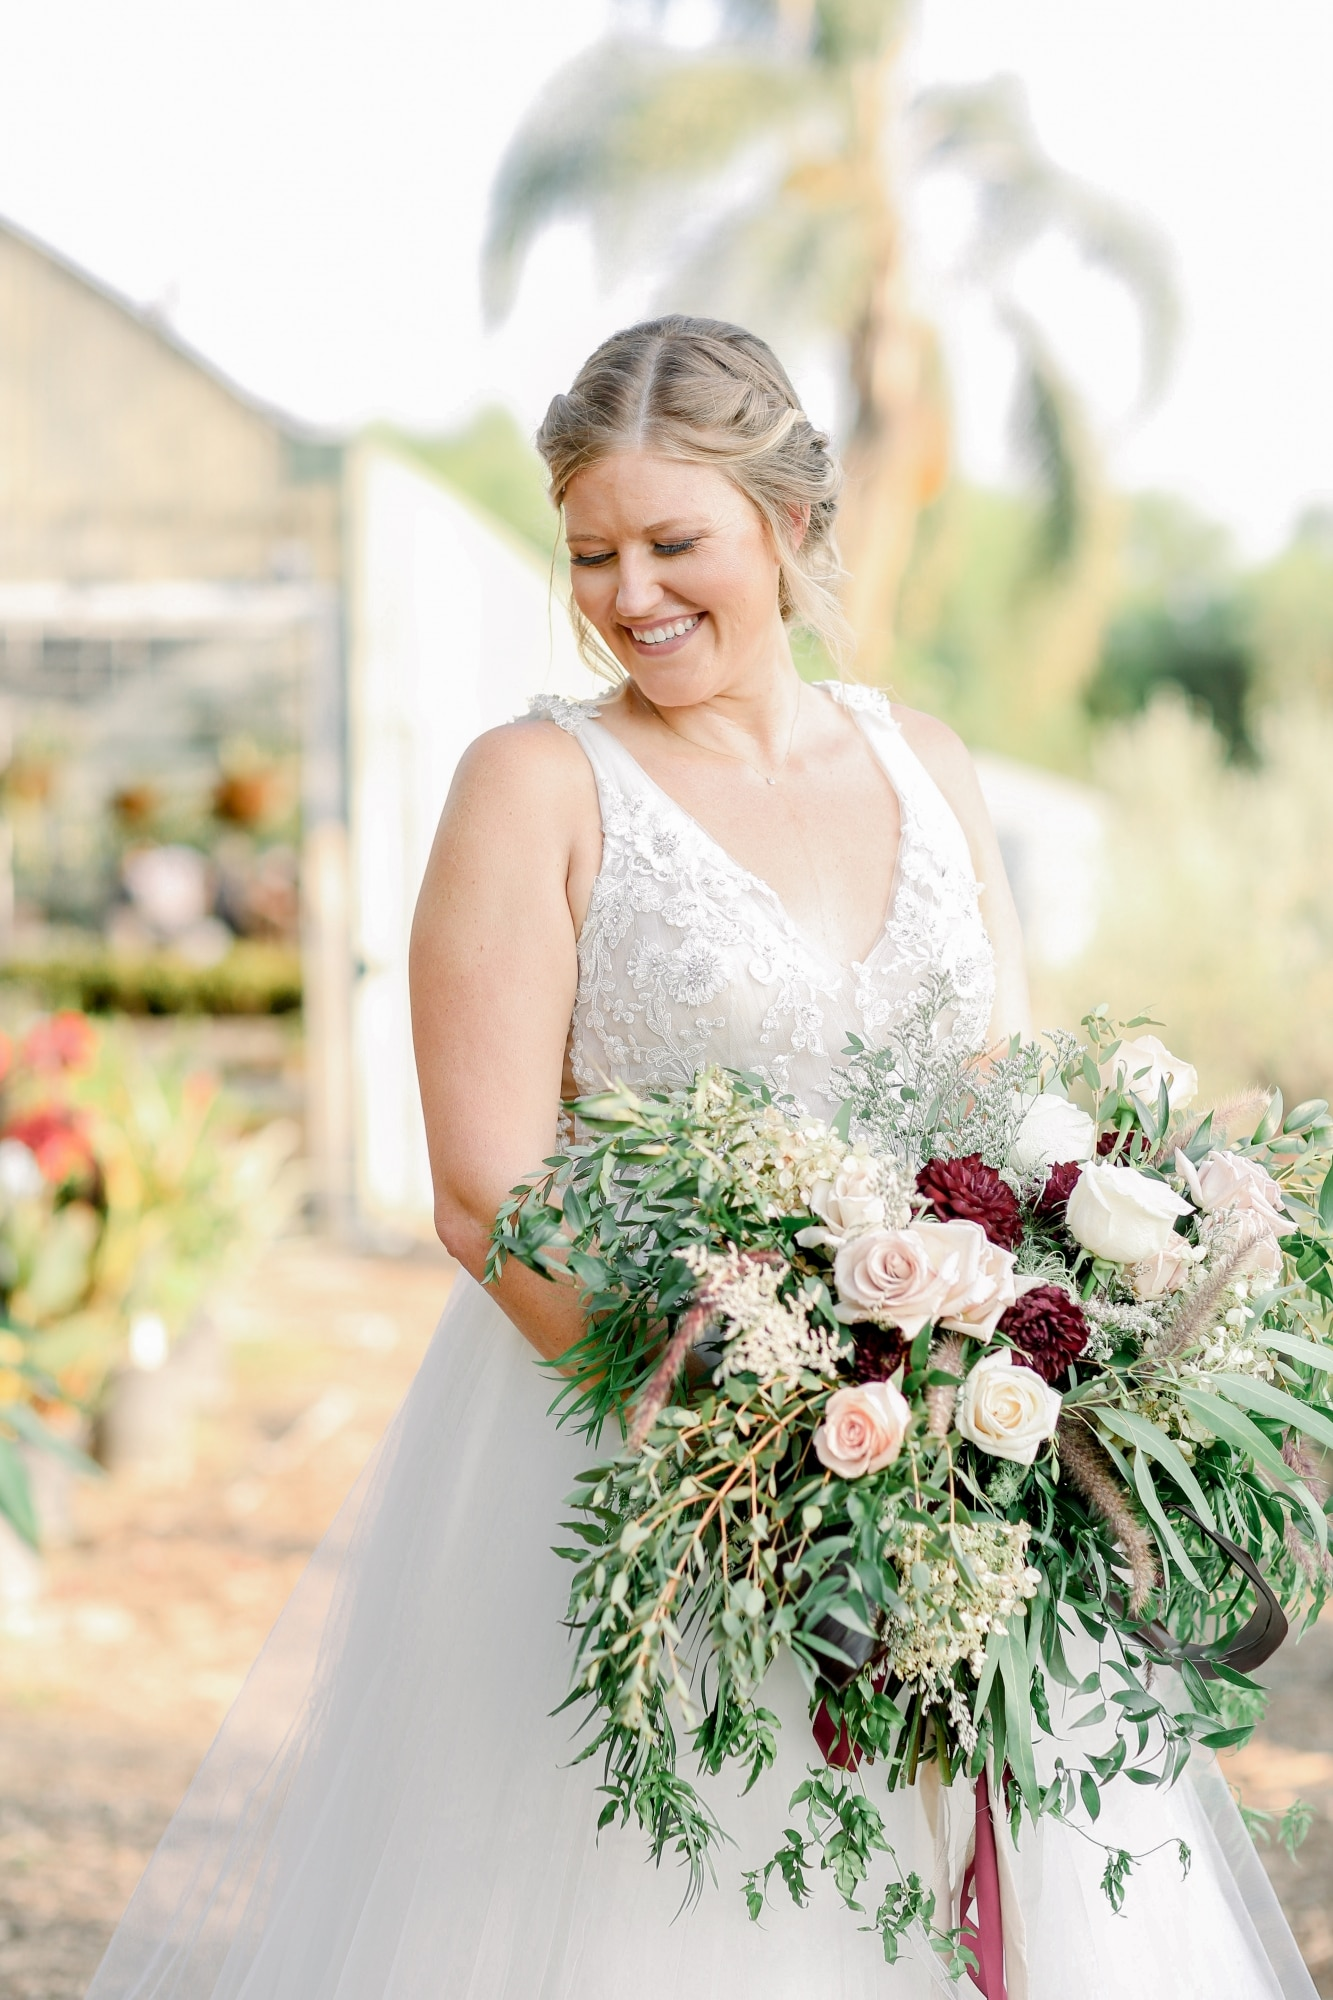 bride looking down holding beautiful bouquet with red and white roses